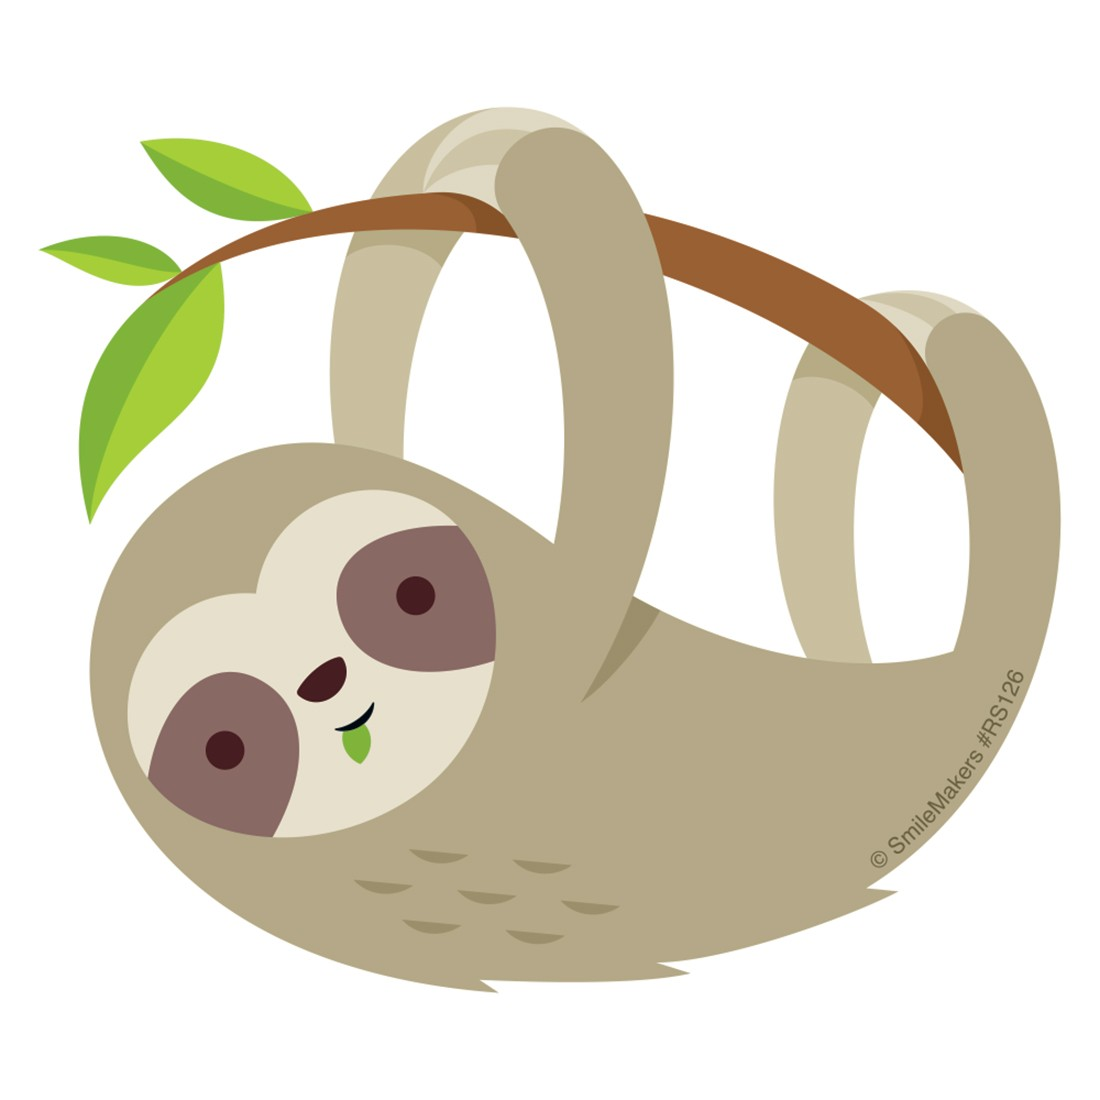 Sloth Re-Stickable Stickers  [image]